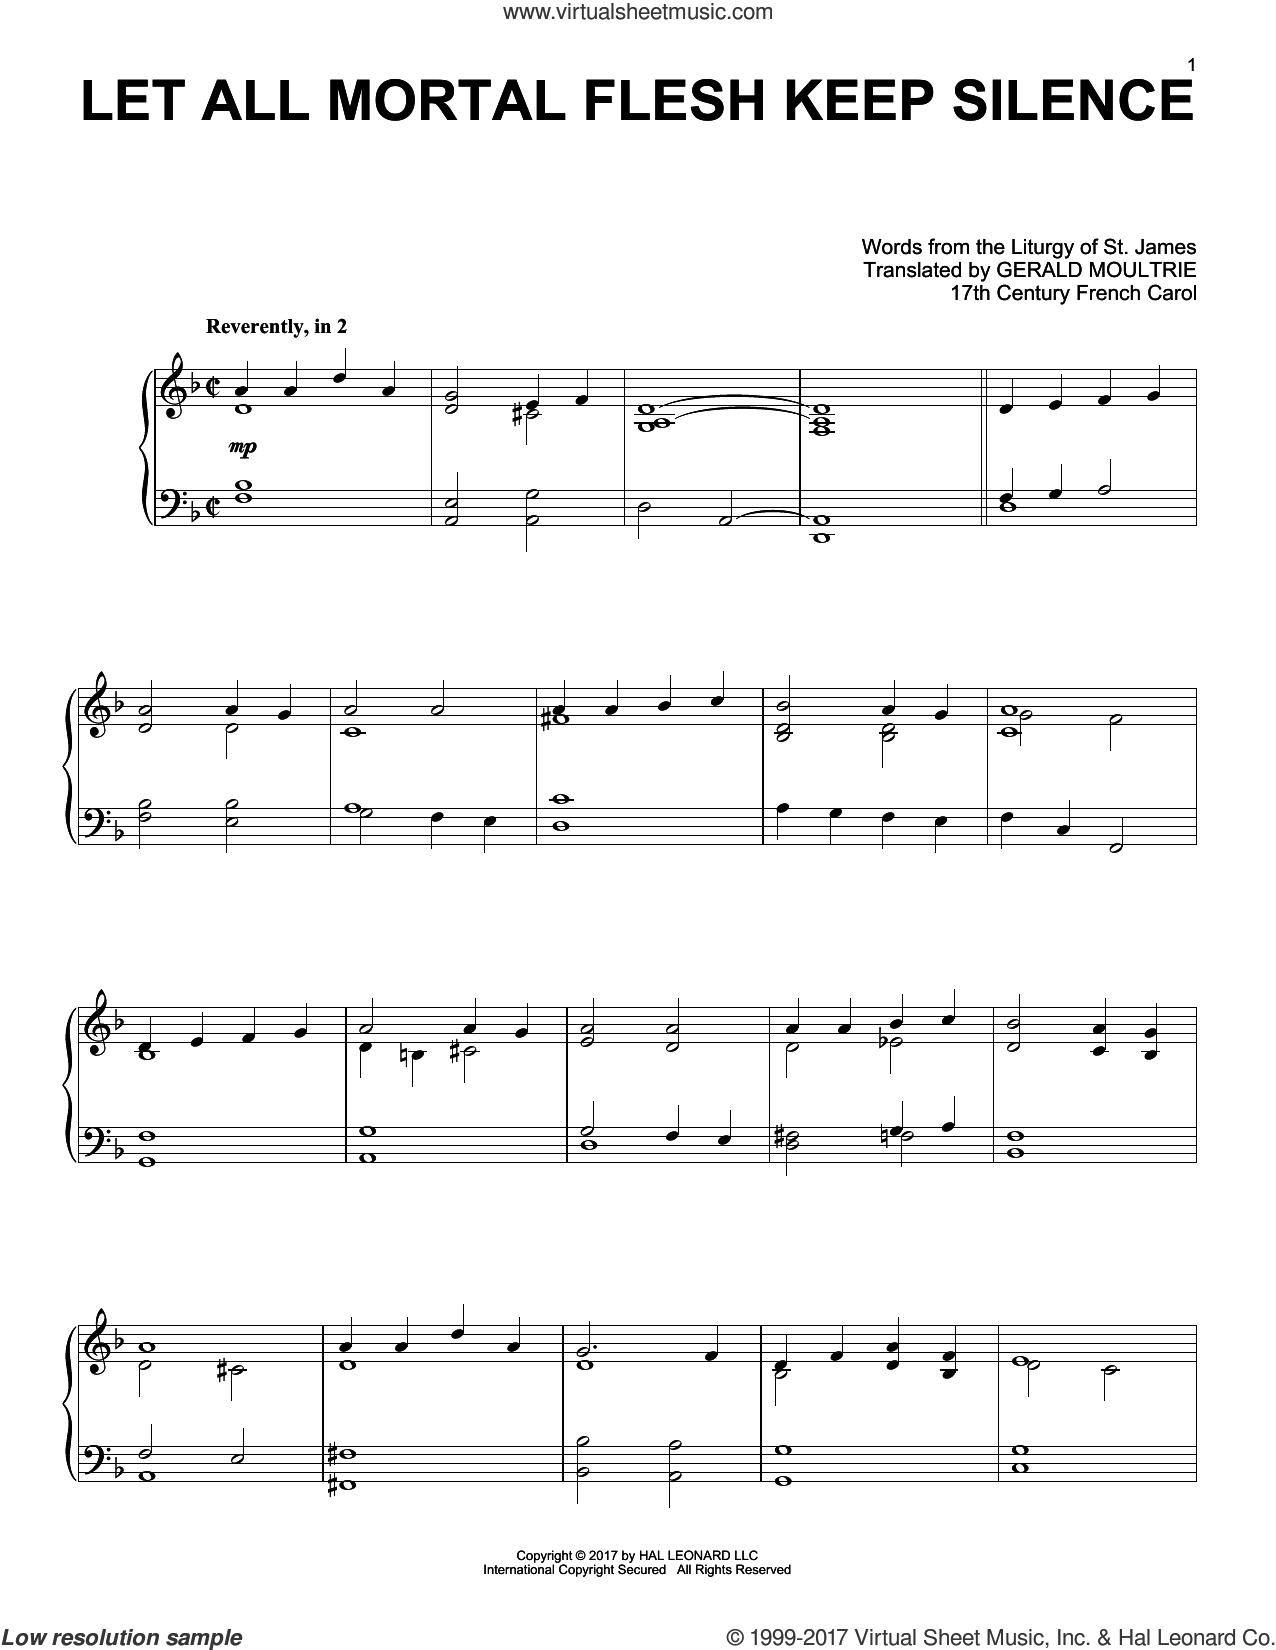 Let All Mortal Flesh Keep Silence, (intermediate) sheet music for piano solo by Anonymous, Miscellaneous, Gerard Moultrie and Liturgy Of St. James, intermediate skill level